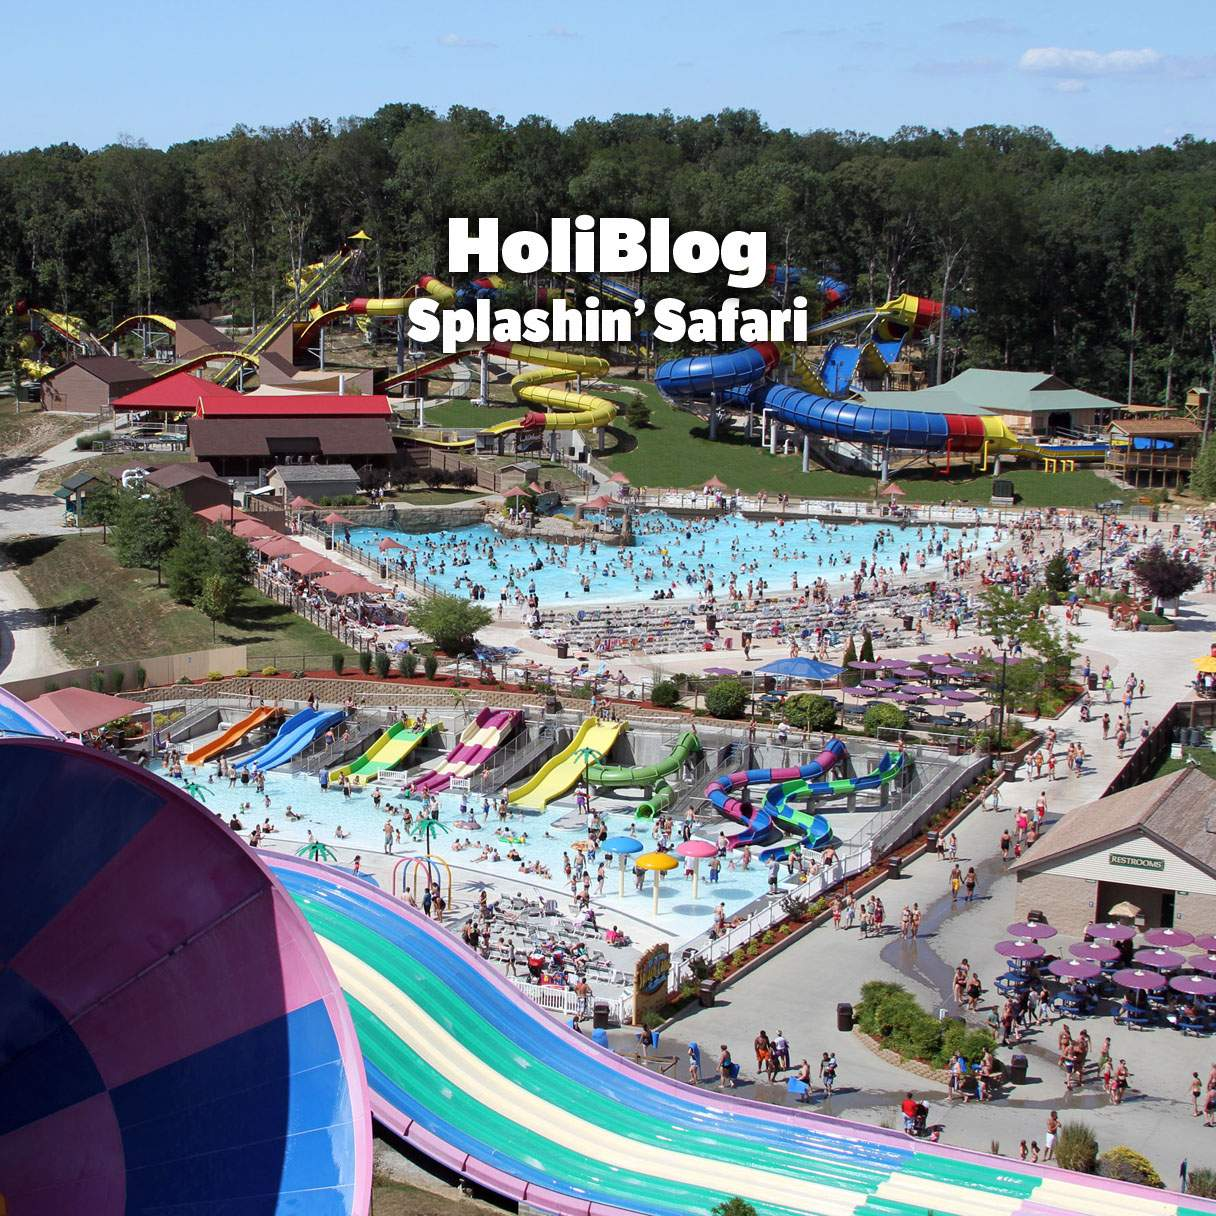 HoliBlog: Splashin' Safari | Holiday World & Splashin' Safari